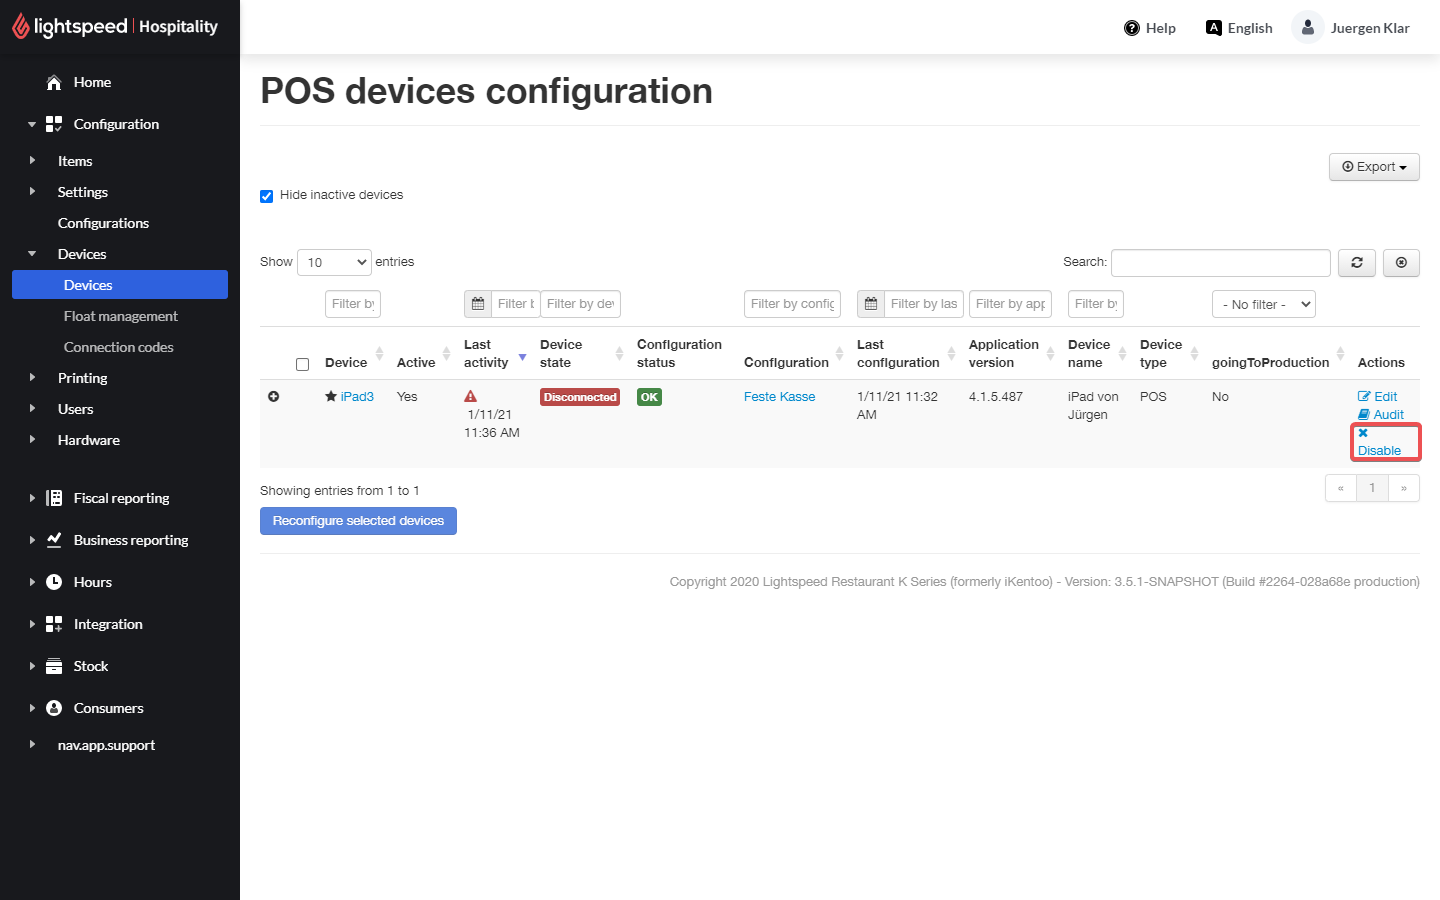 kseries-configuration-devices-devices-disable.png